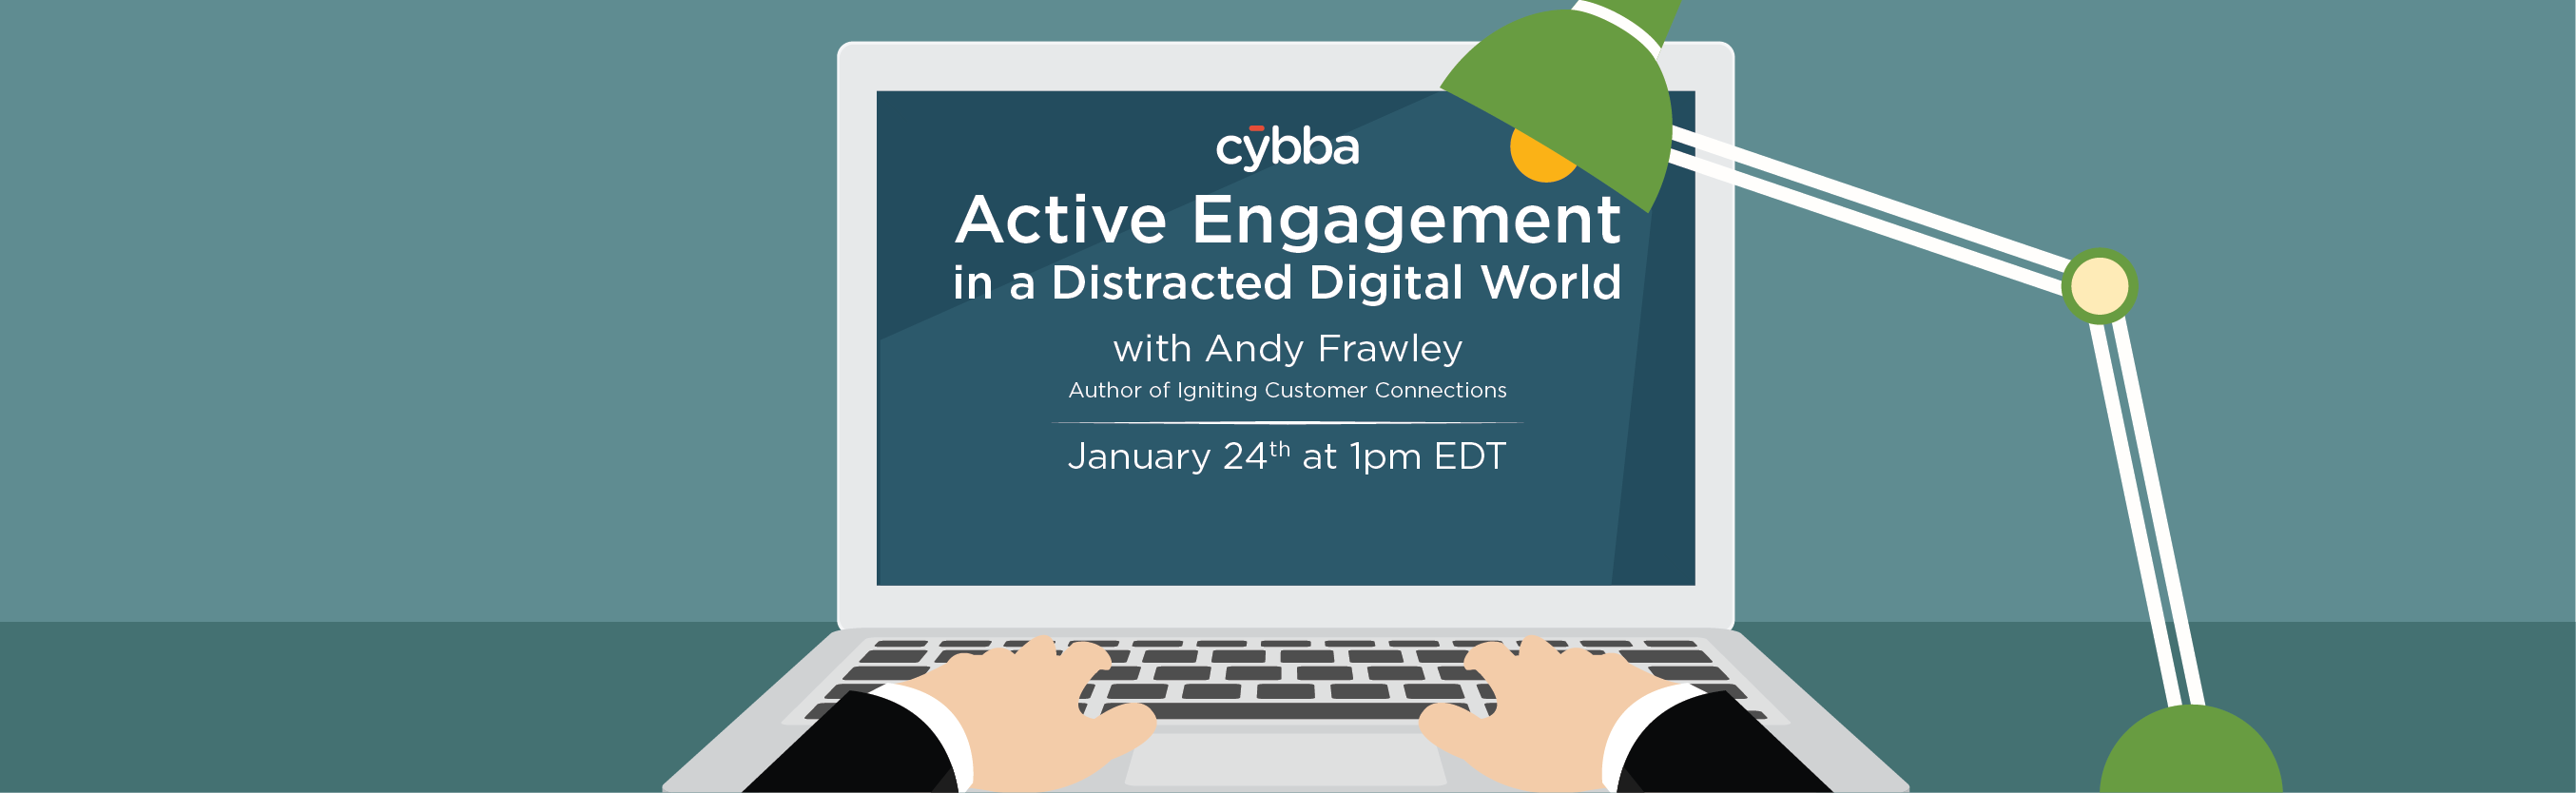 Active Engagement in a Distracted Digital World